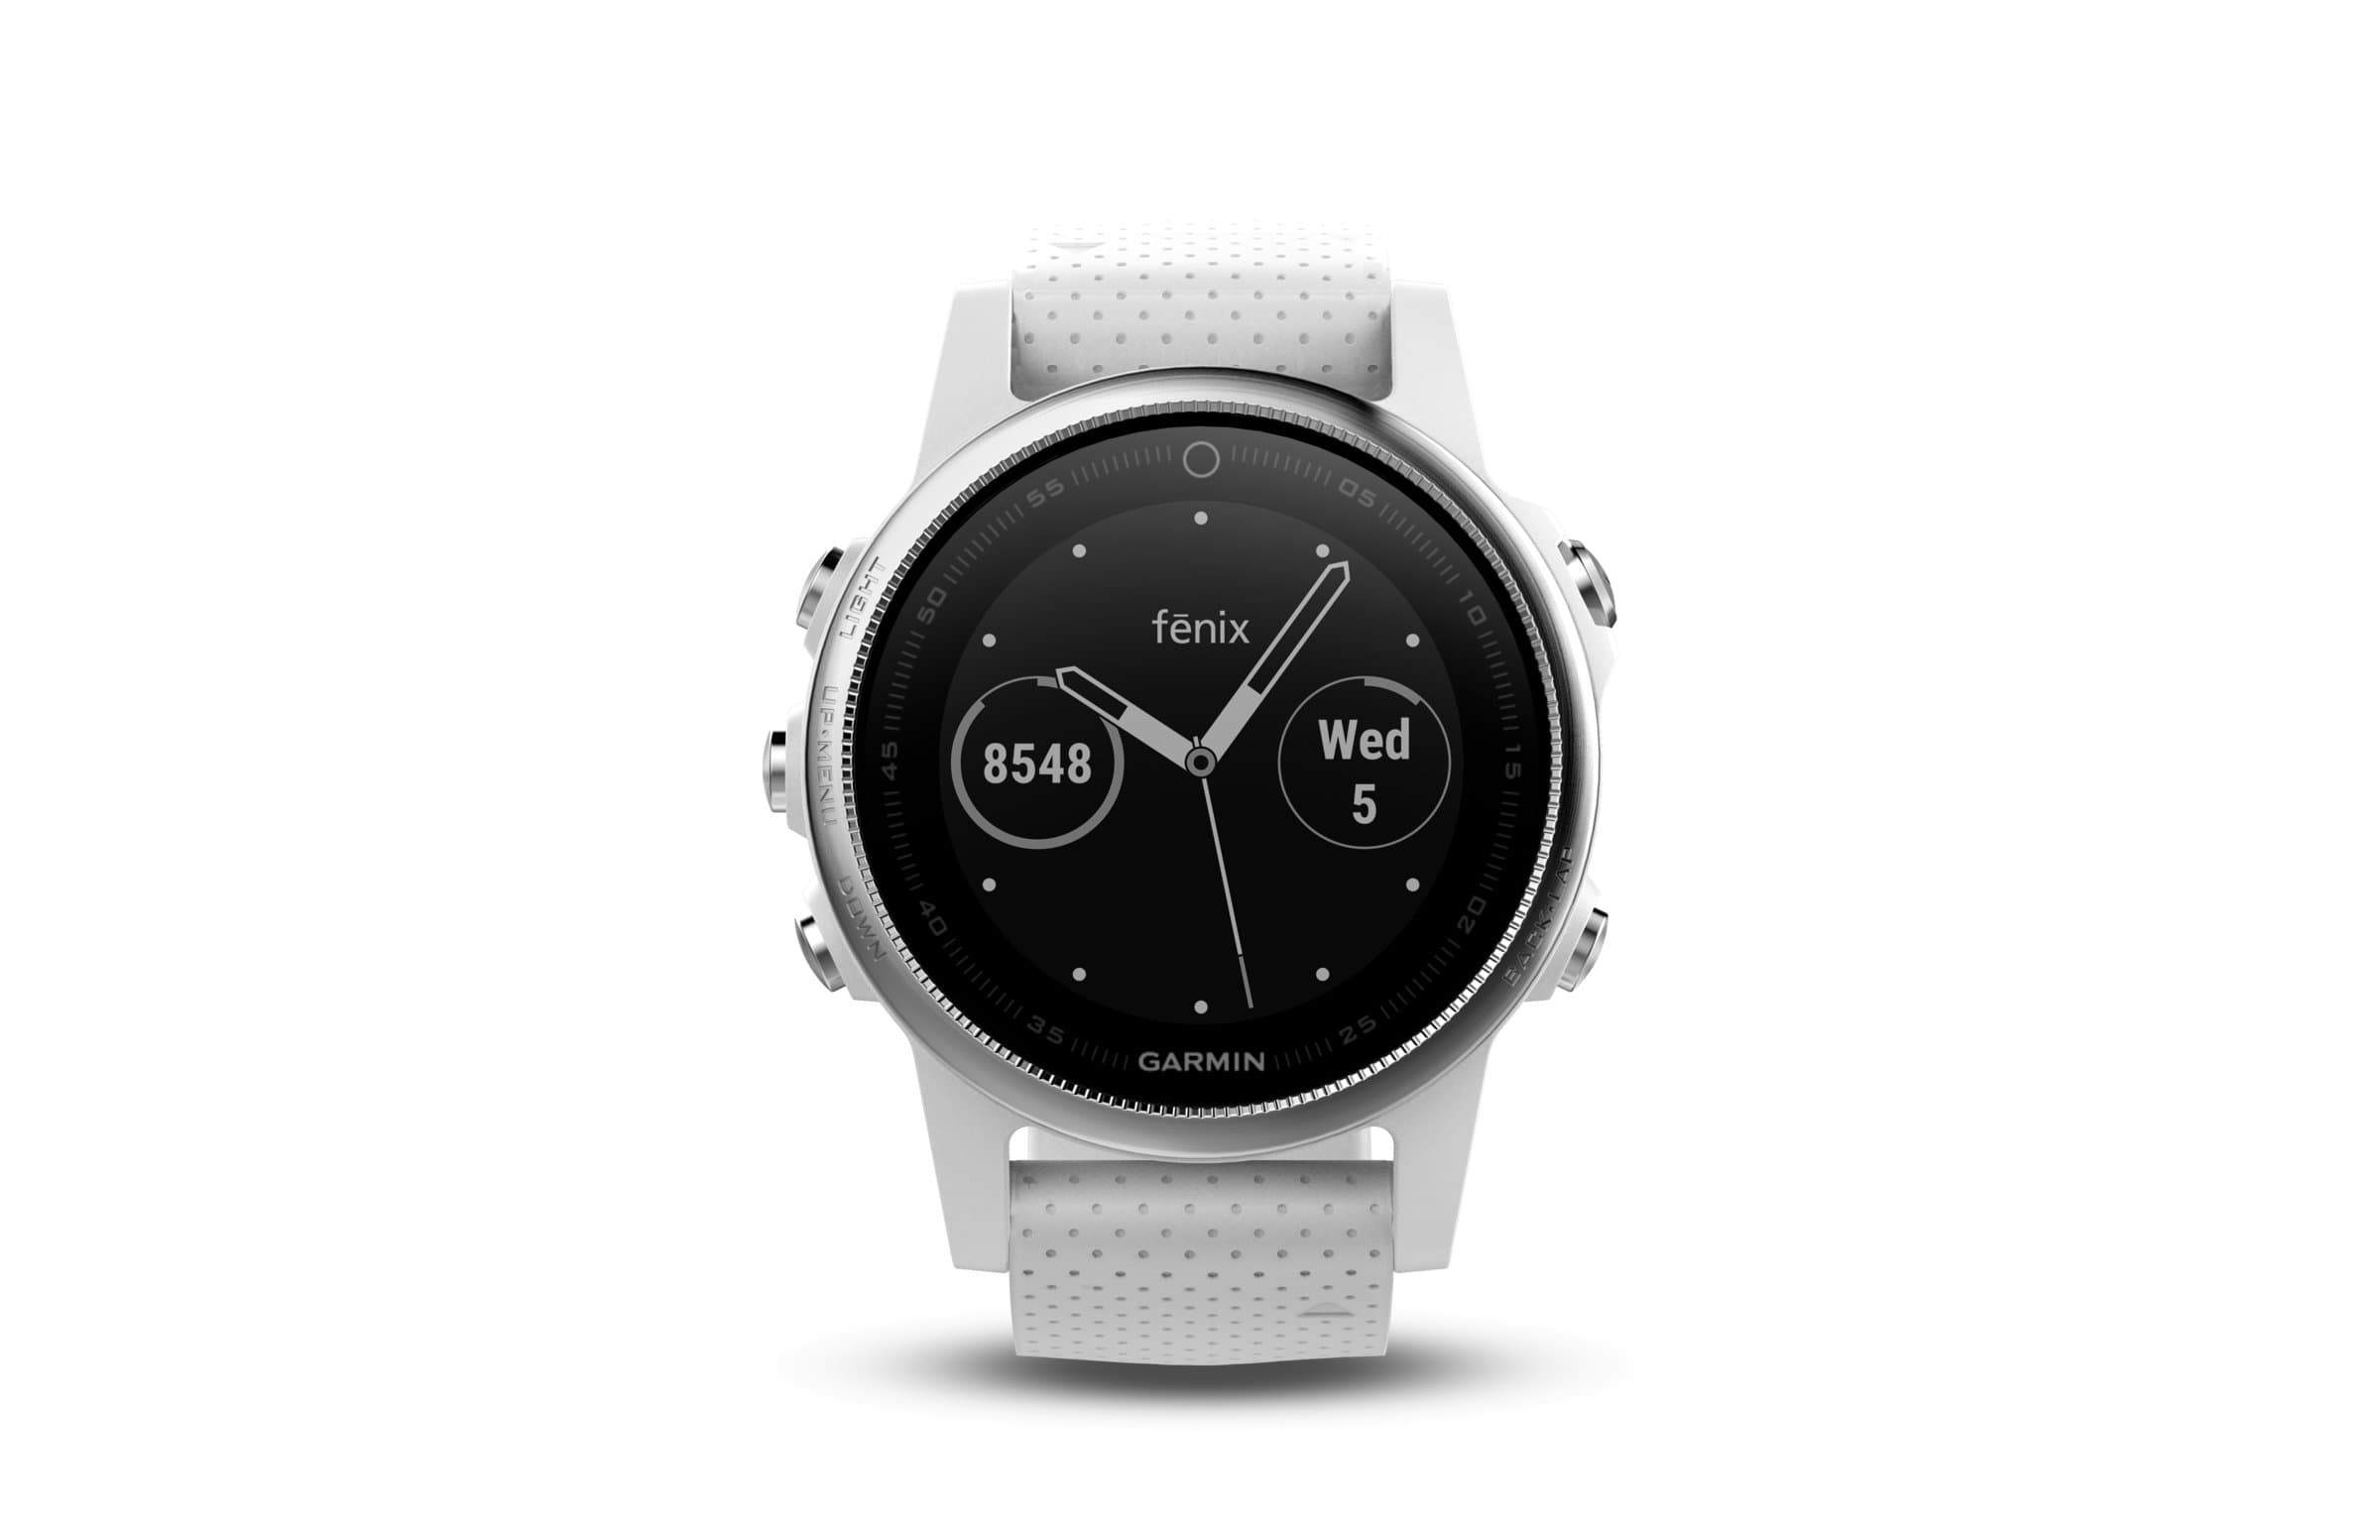 garmin fenix 5s cardiofr quencem tre migros. Black Bedroom Furniture Sets. Home Design Ideas